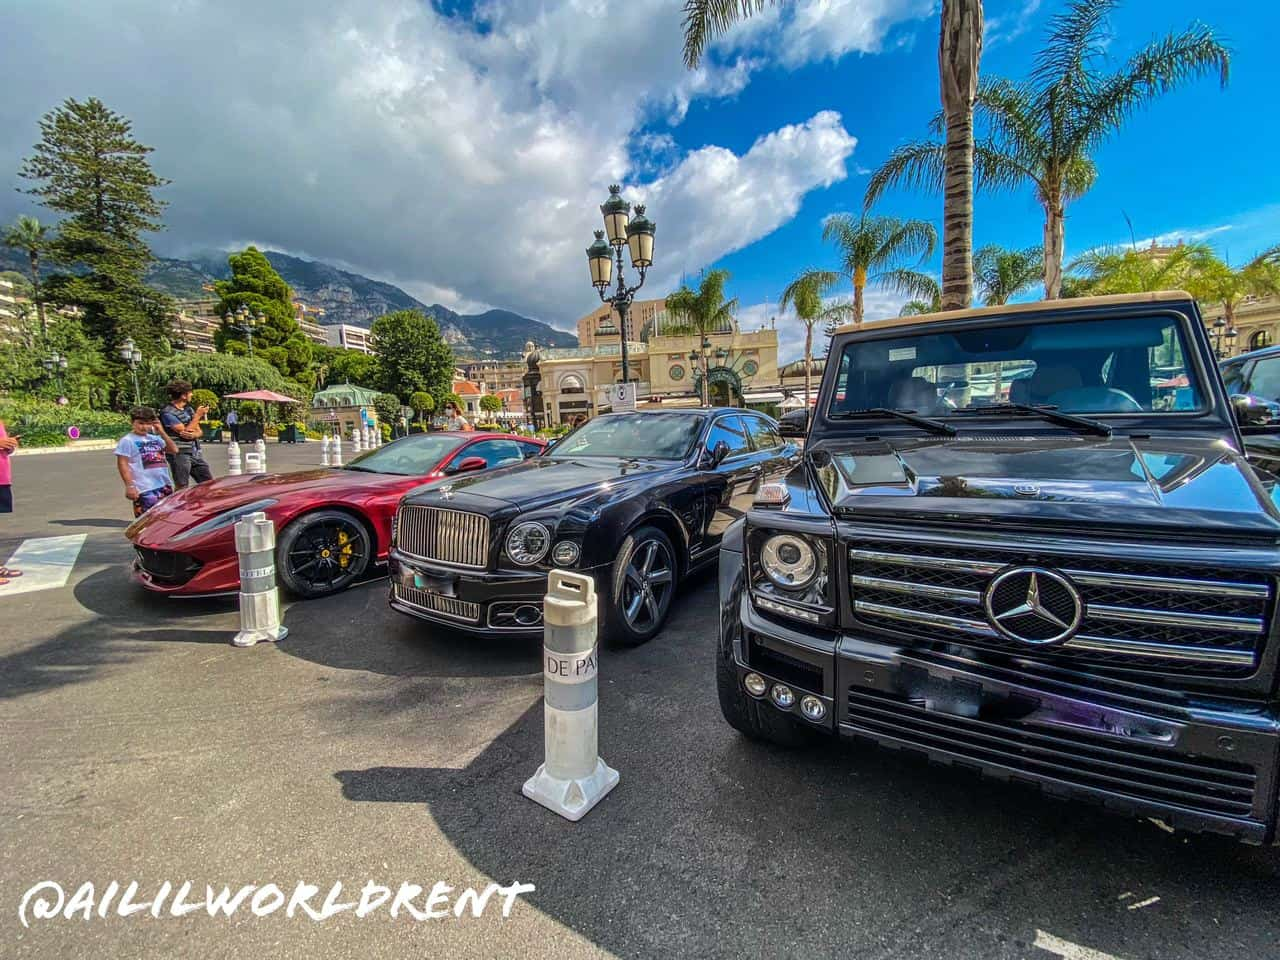 rent 812 superfast, bentley, mercedes in monaco